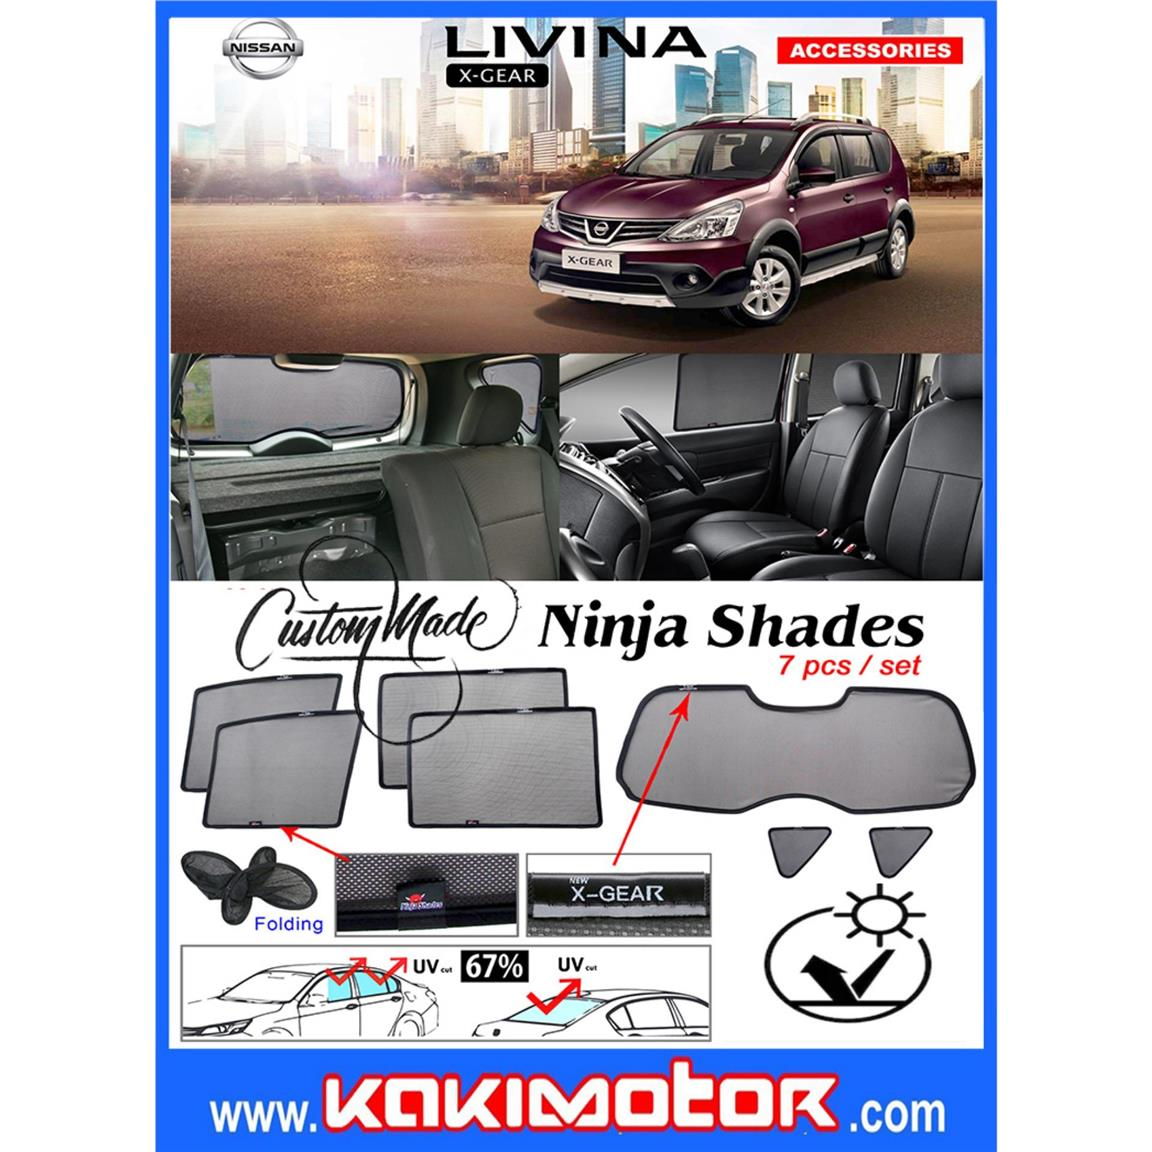 Ninja Sunshade for Nissan Livina X-GEAR(7PCS)